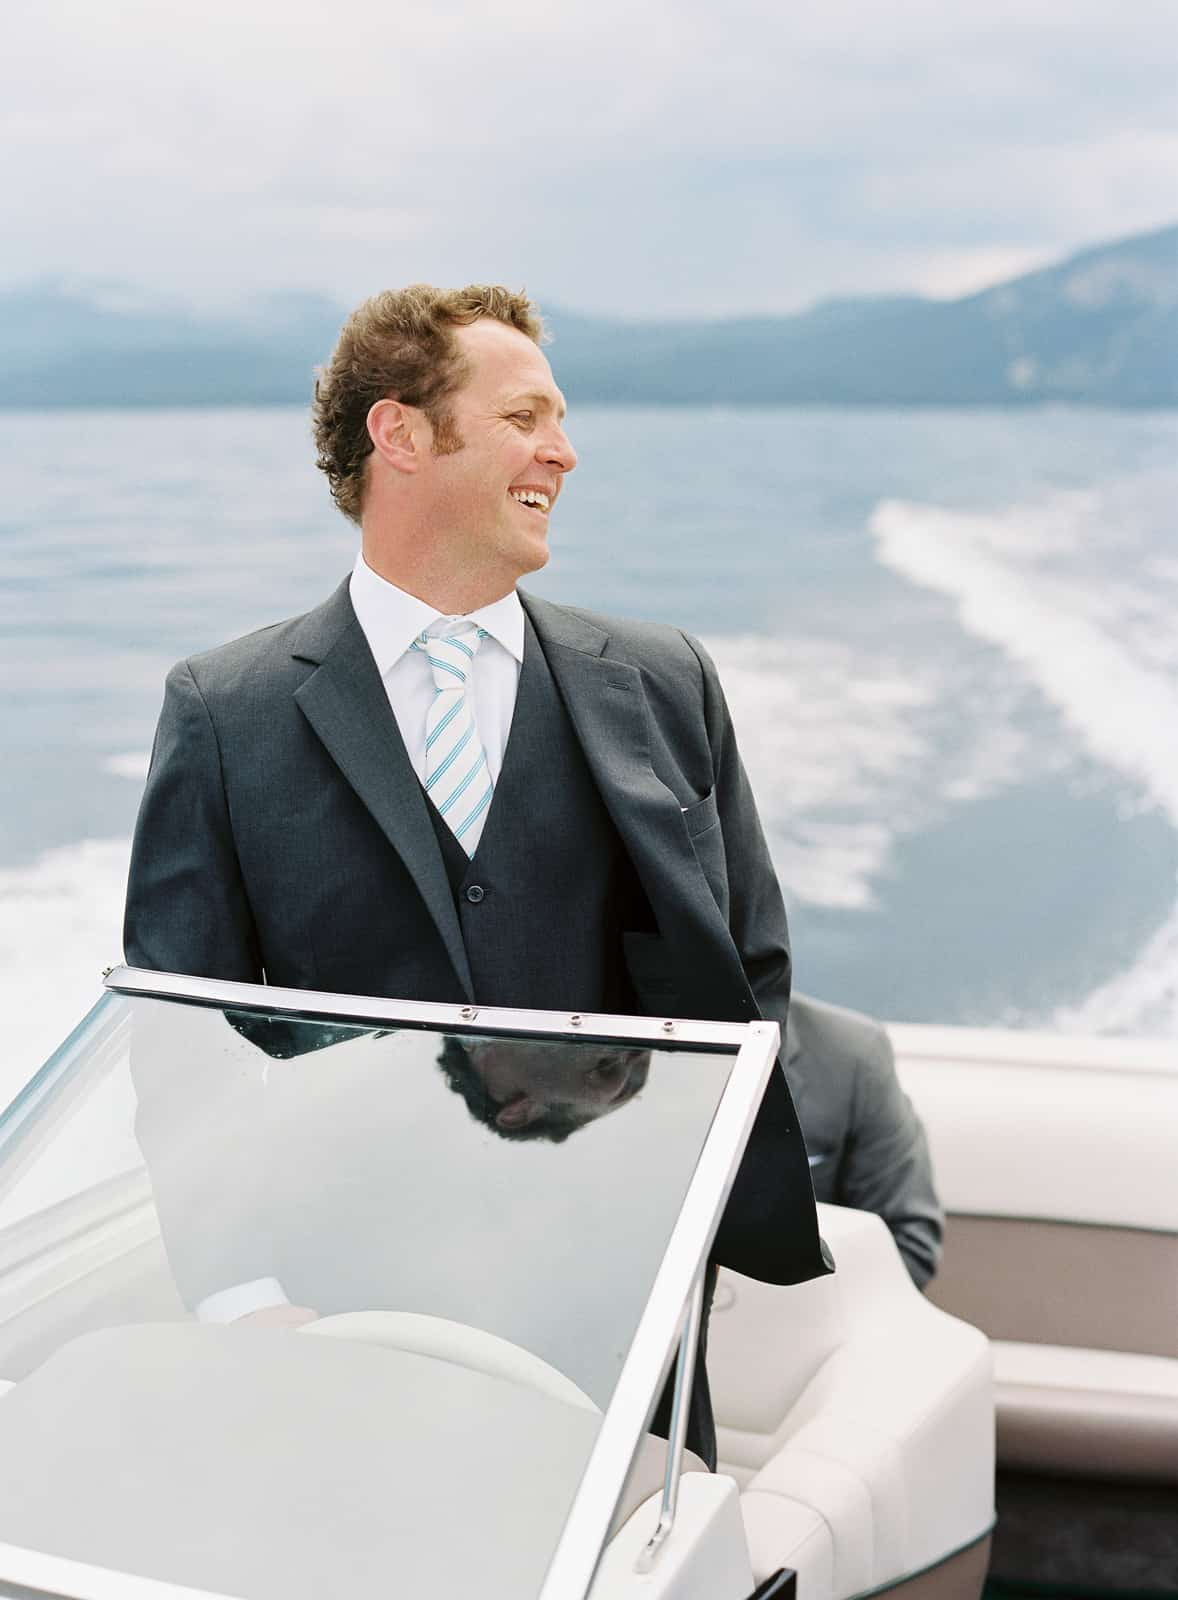 Groom driving a boat to the ceremony